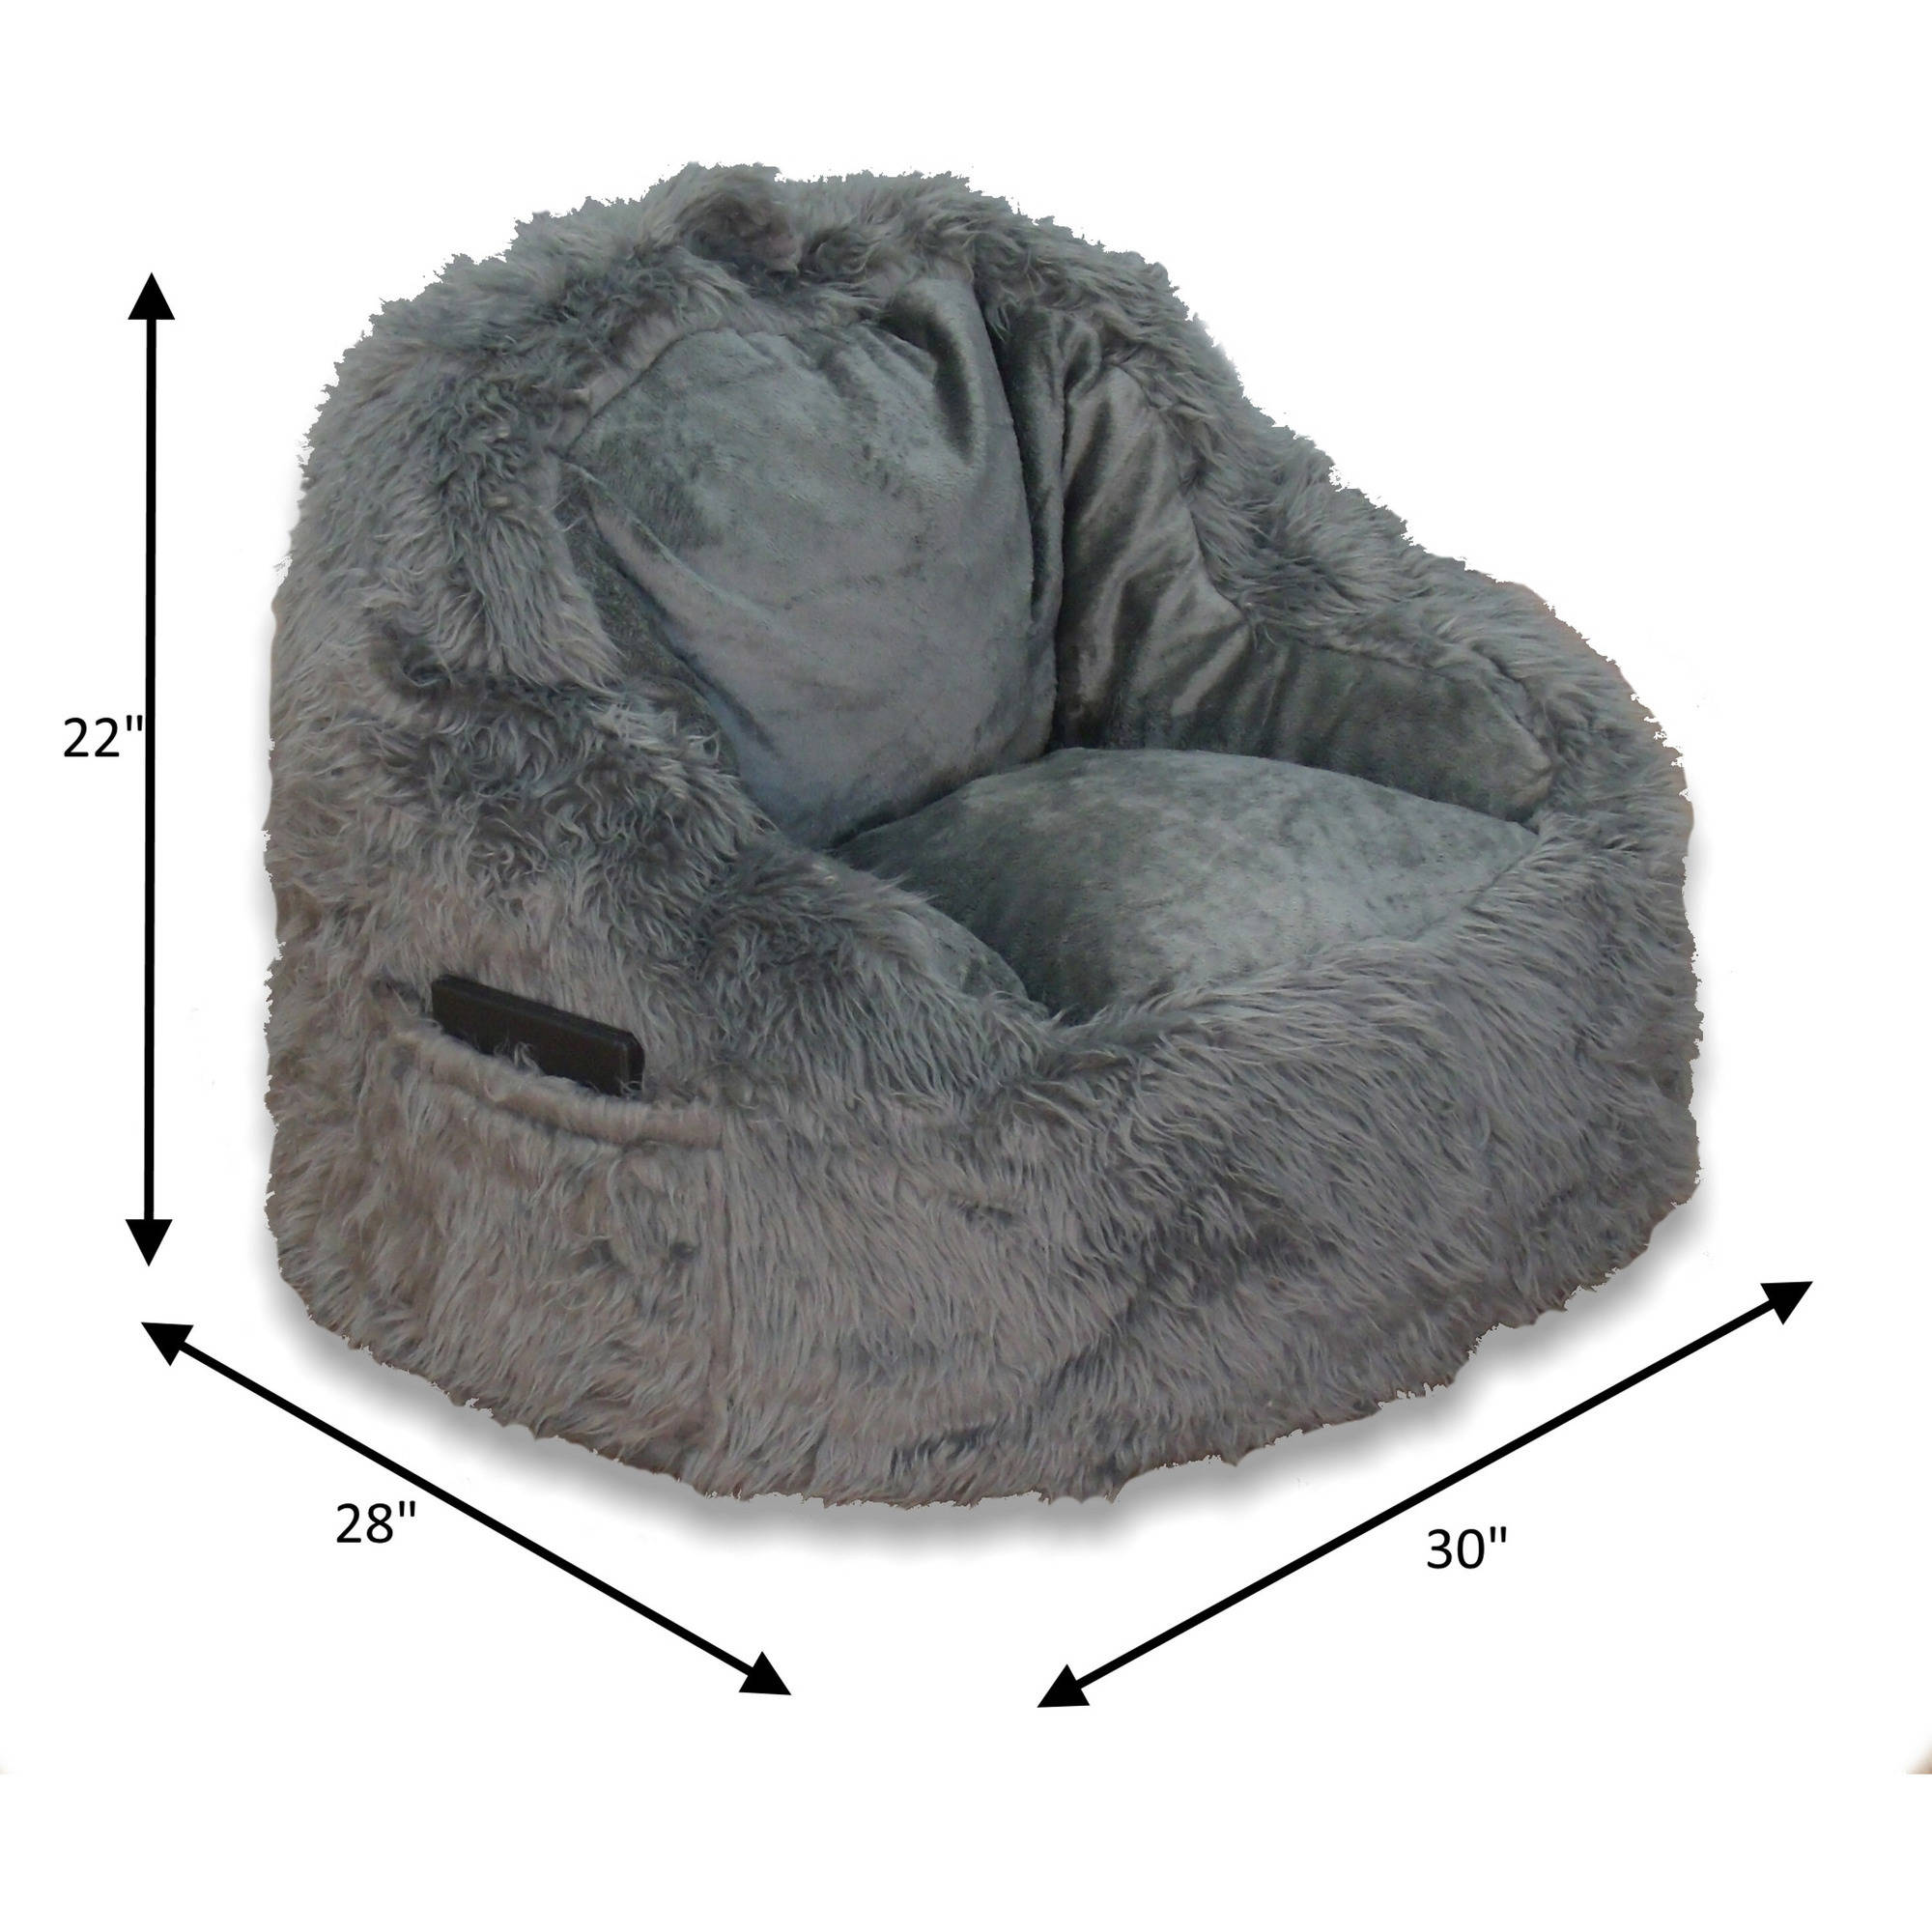 Structured Tablet Fur Bean Bag Chair Available in Multiple Colors